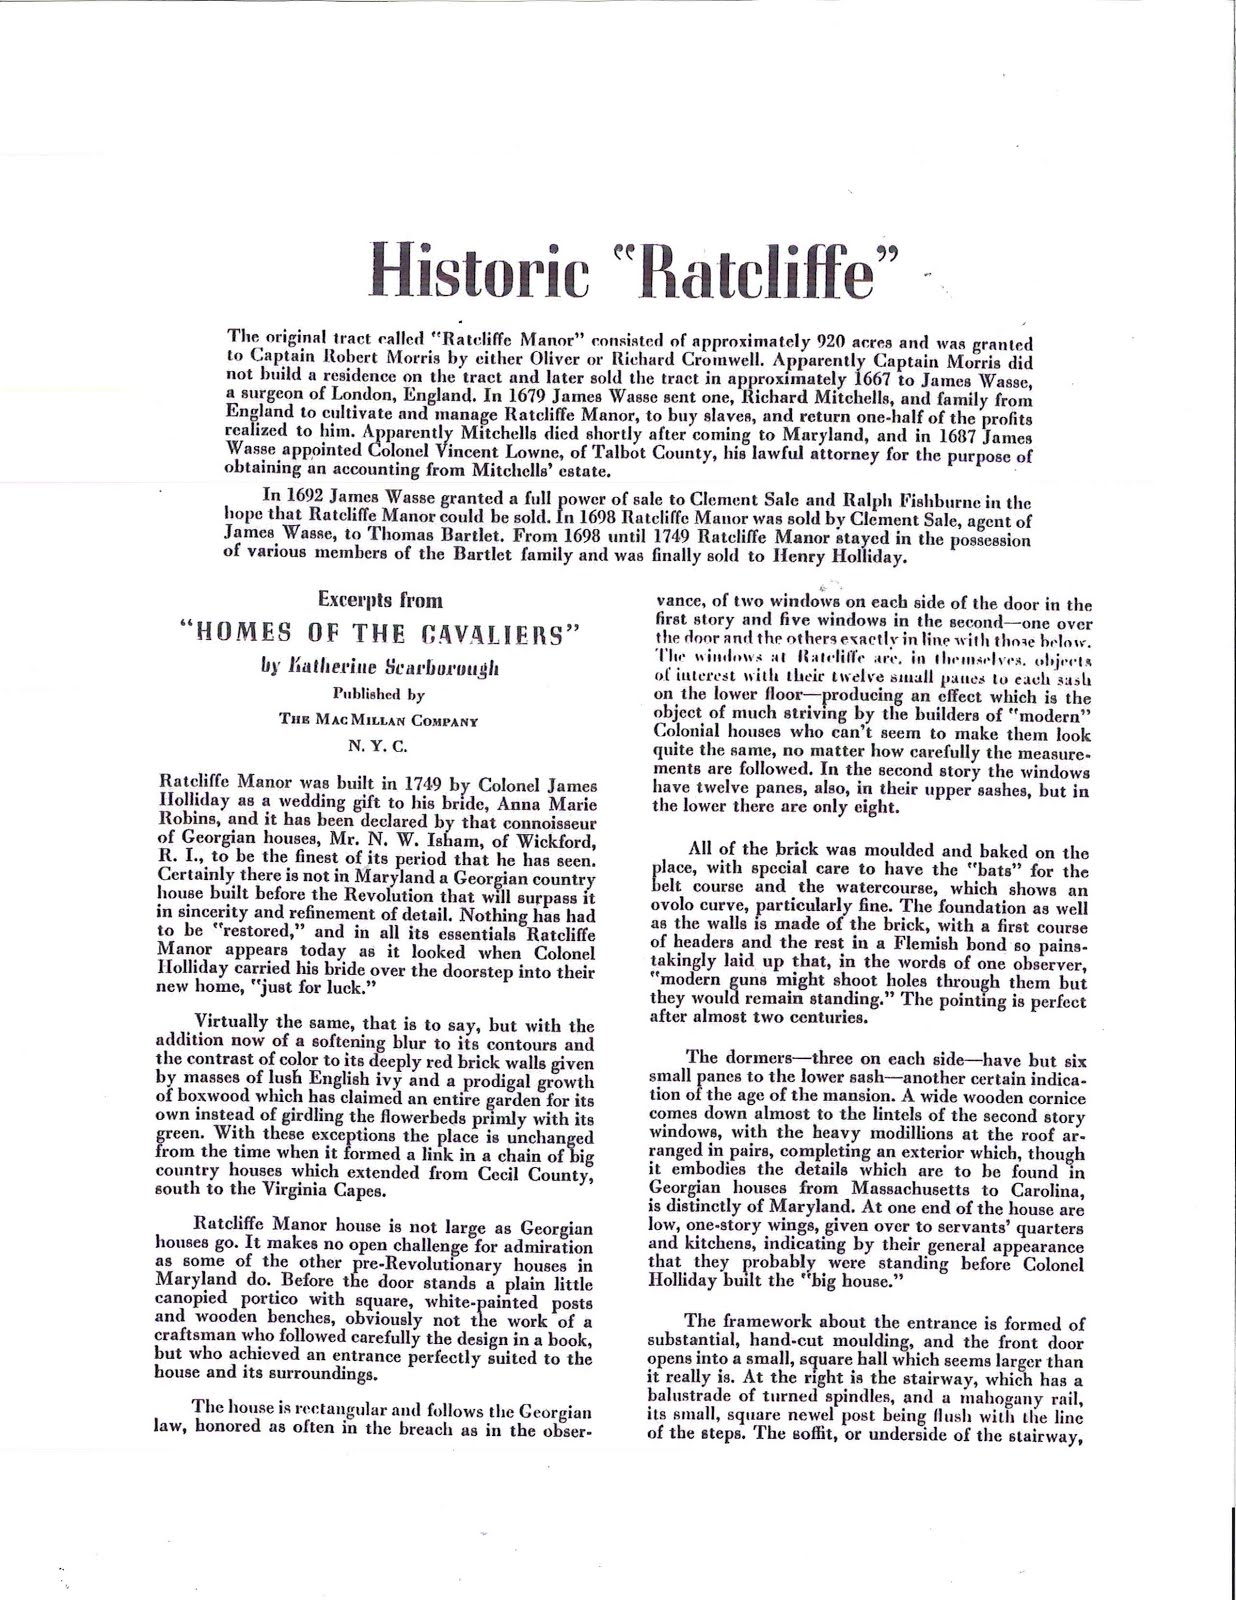 History of Ratcliffe